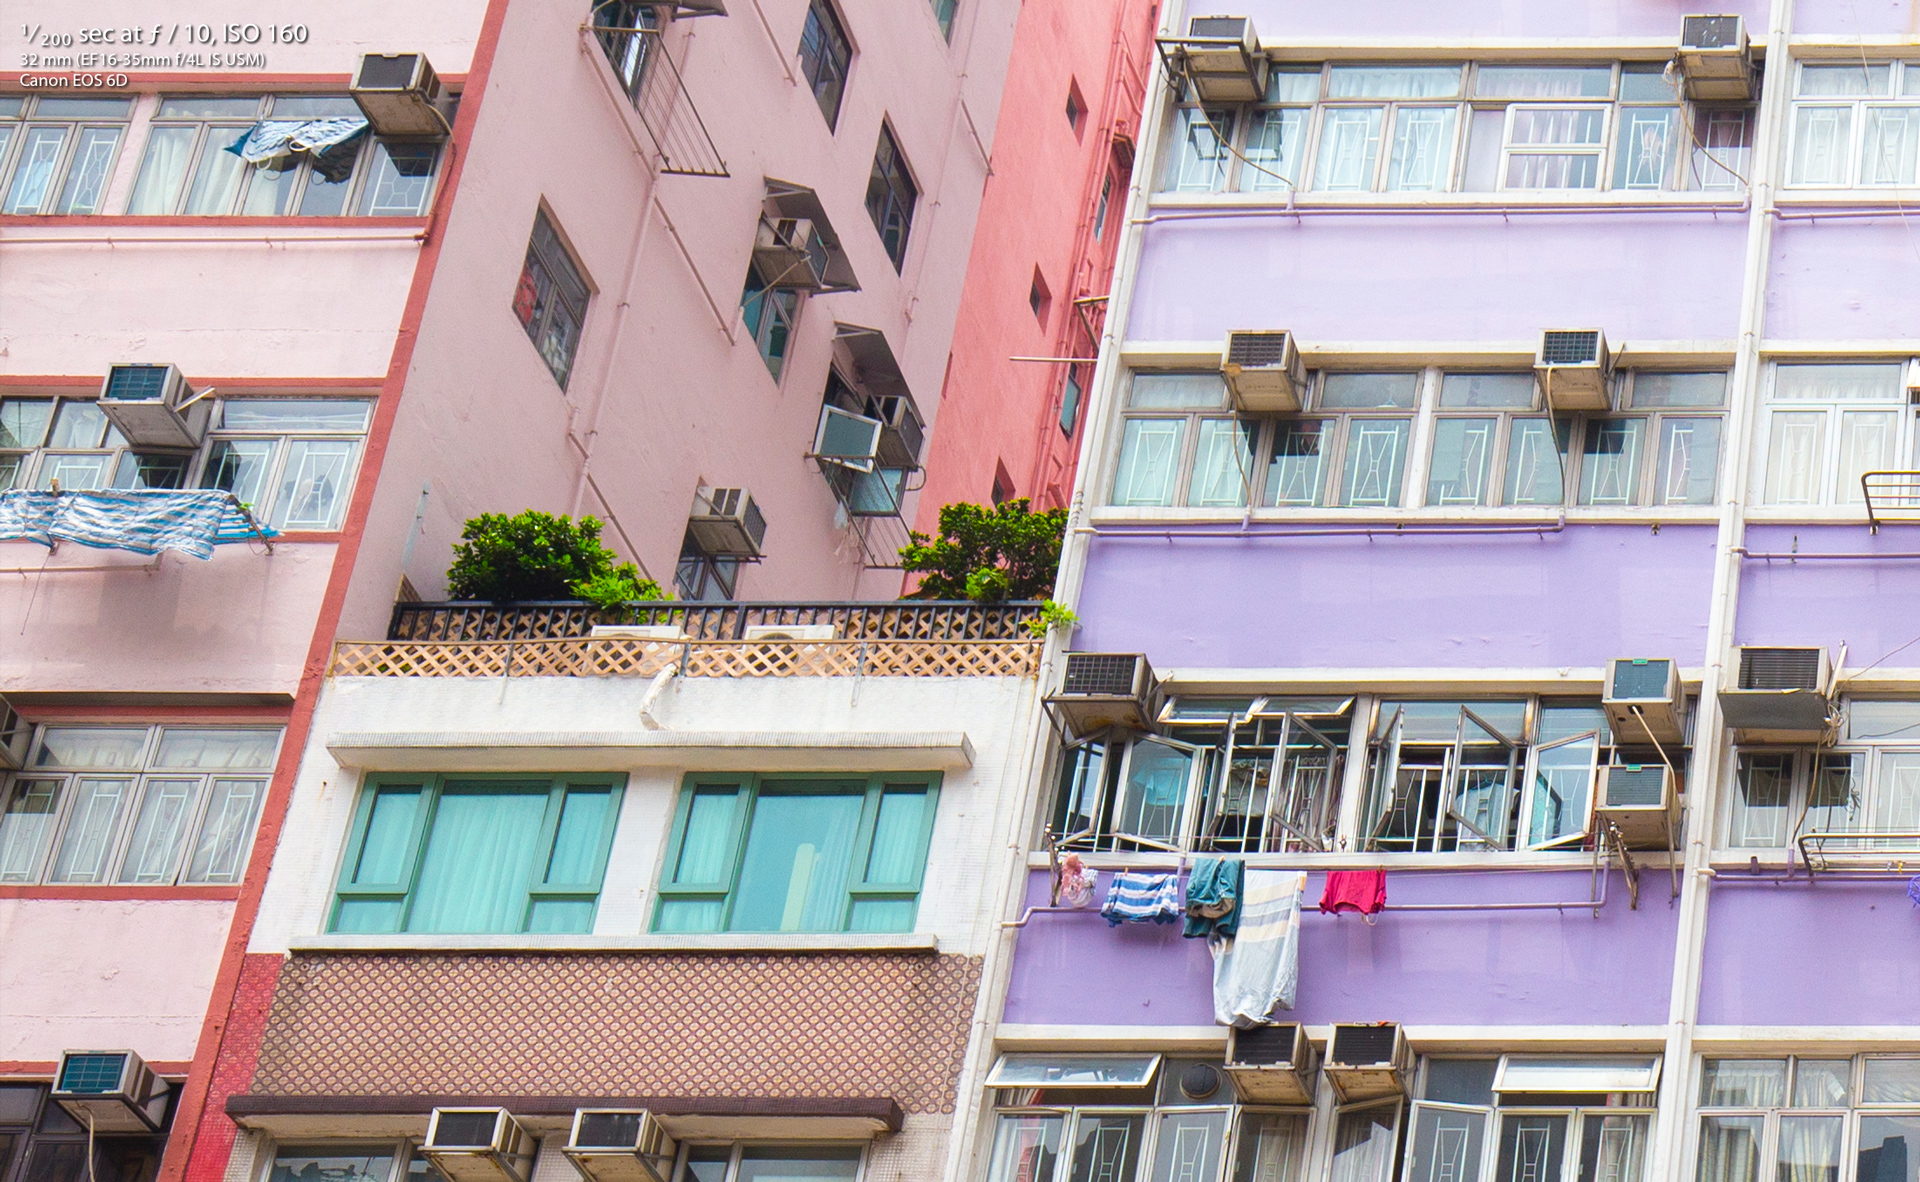 Canon_16-35mm_F4_IS_on_Canon_EOS_6D_Travel_Hong_Kong_Color3